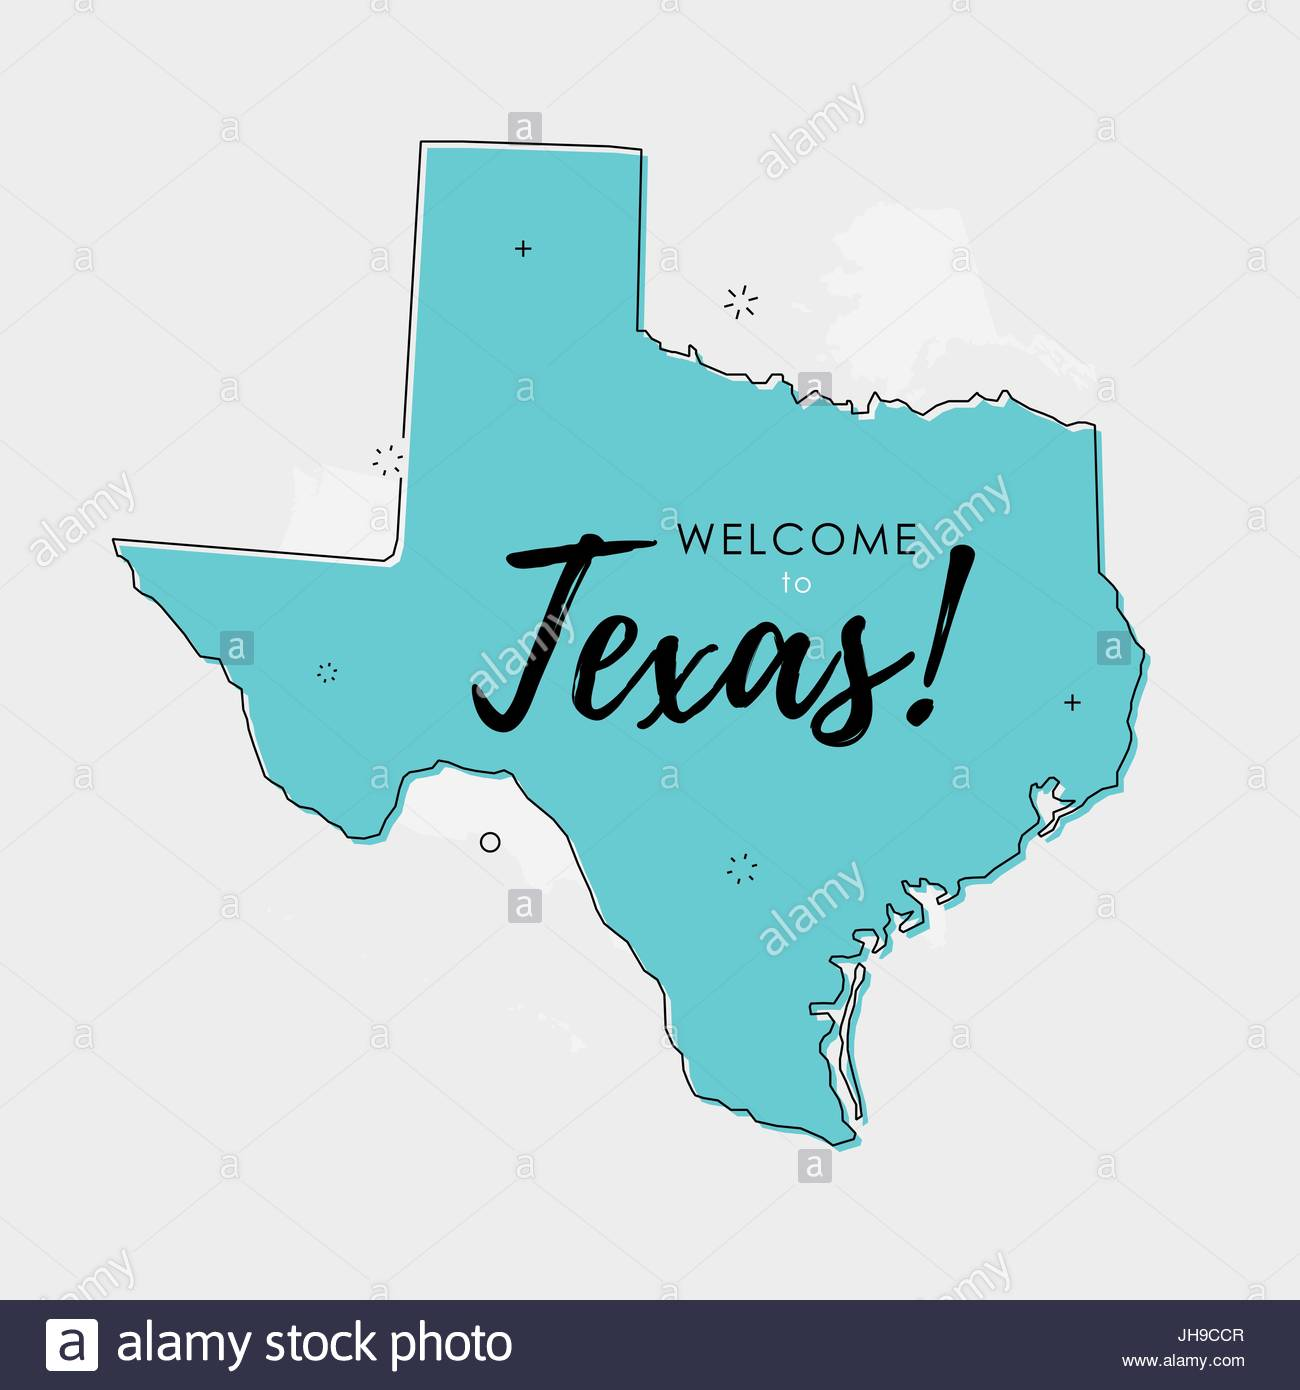 Vector Illustration Of Texas State Map Over US Map In Trendy Flat - Us map flat